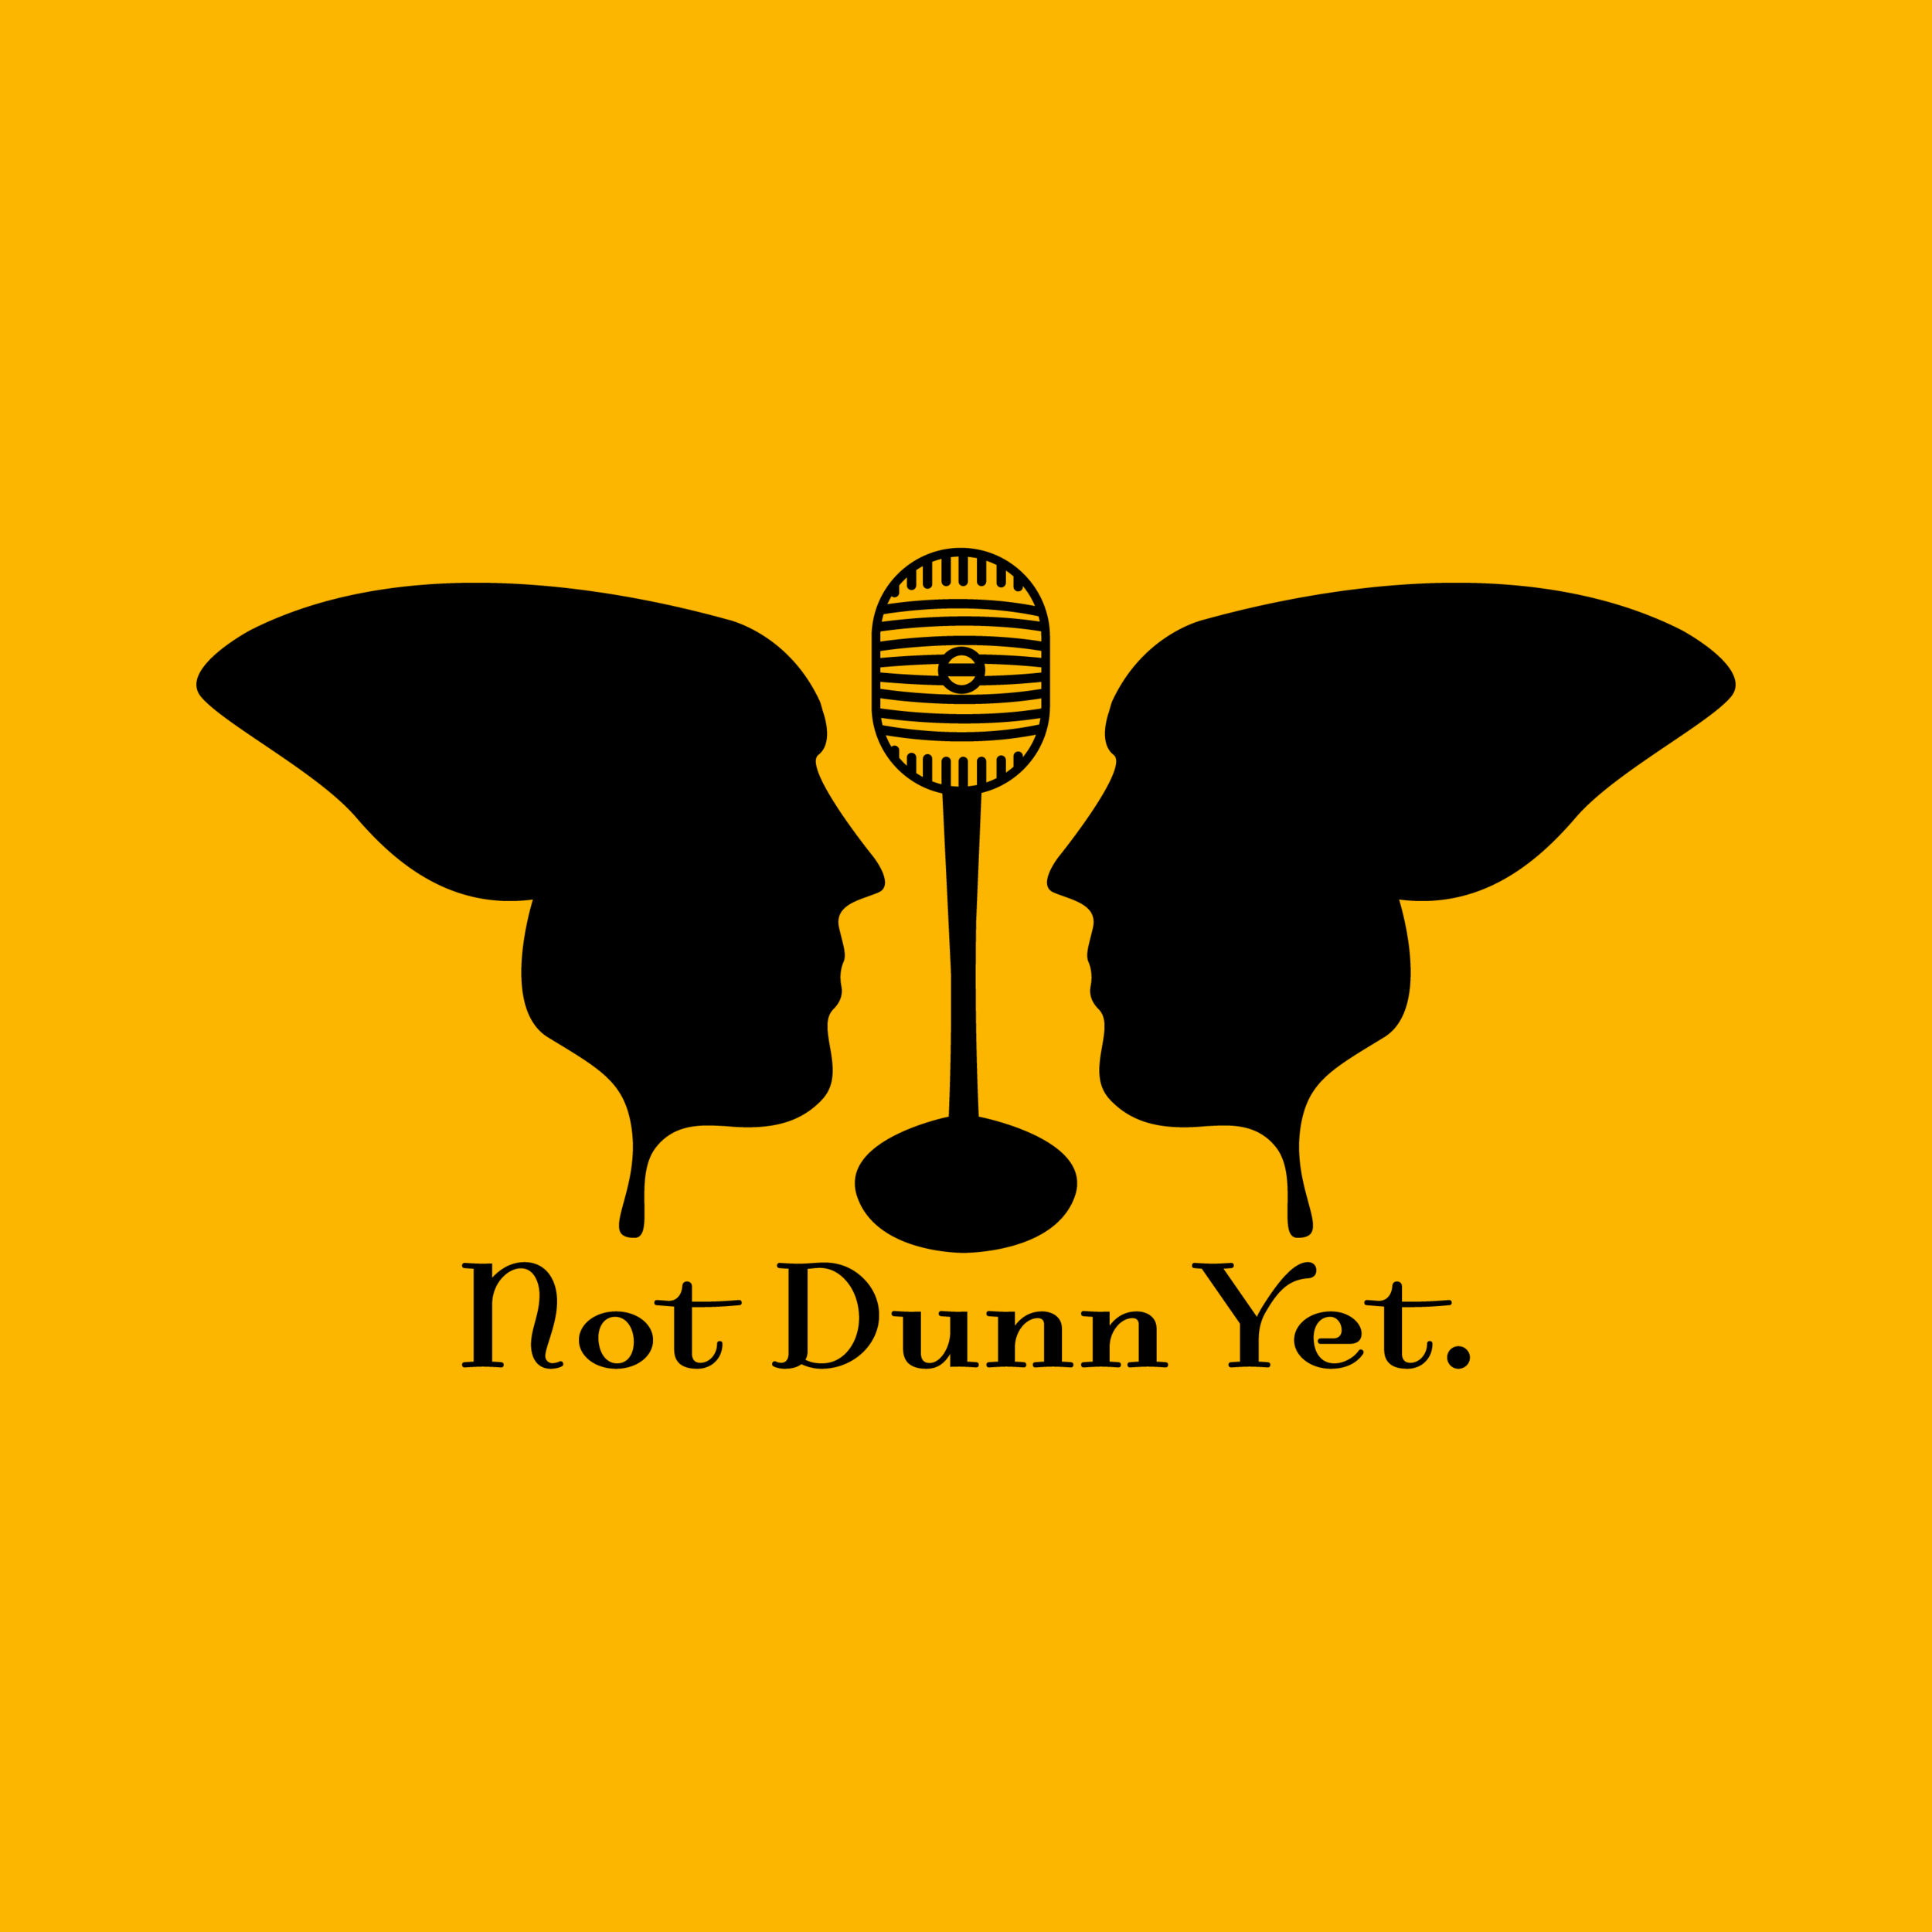 Not Dunn Yet - Join your host, Ben Dunn, every Monday as he shares conversations with some of the interesting people he's met during the course of his studies in Anthropology & Psychology at UBCO.